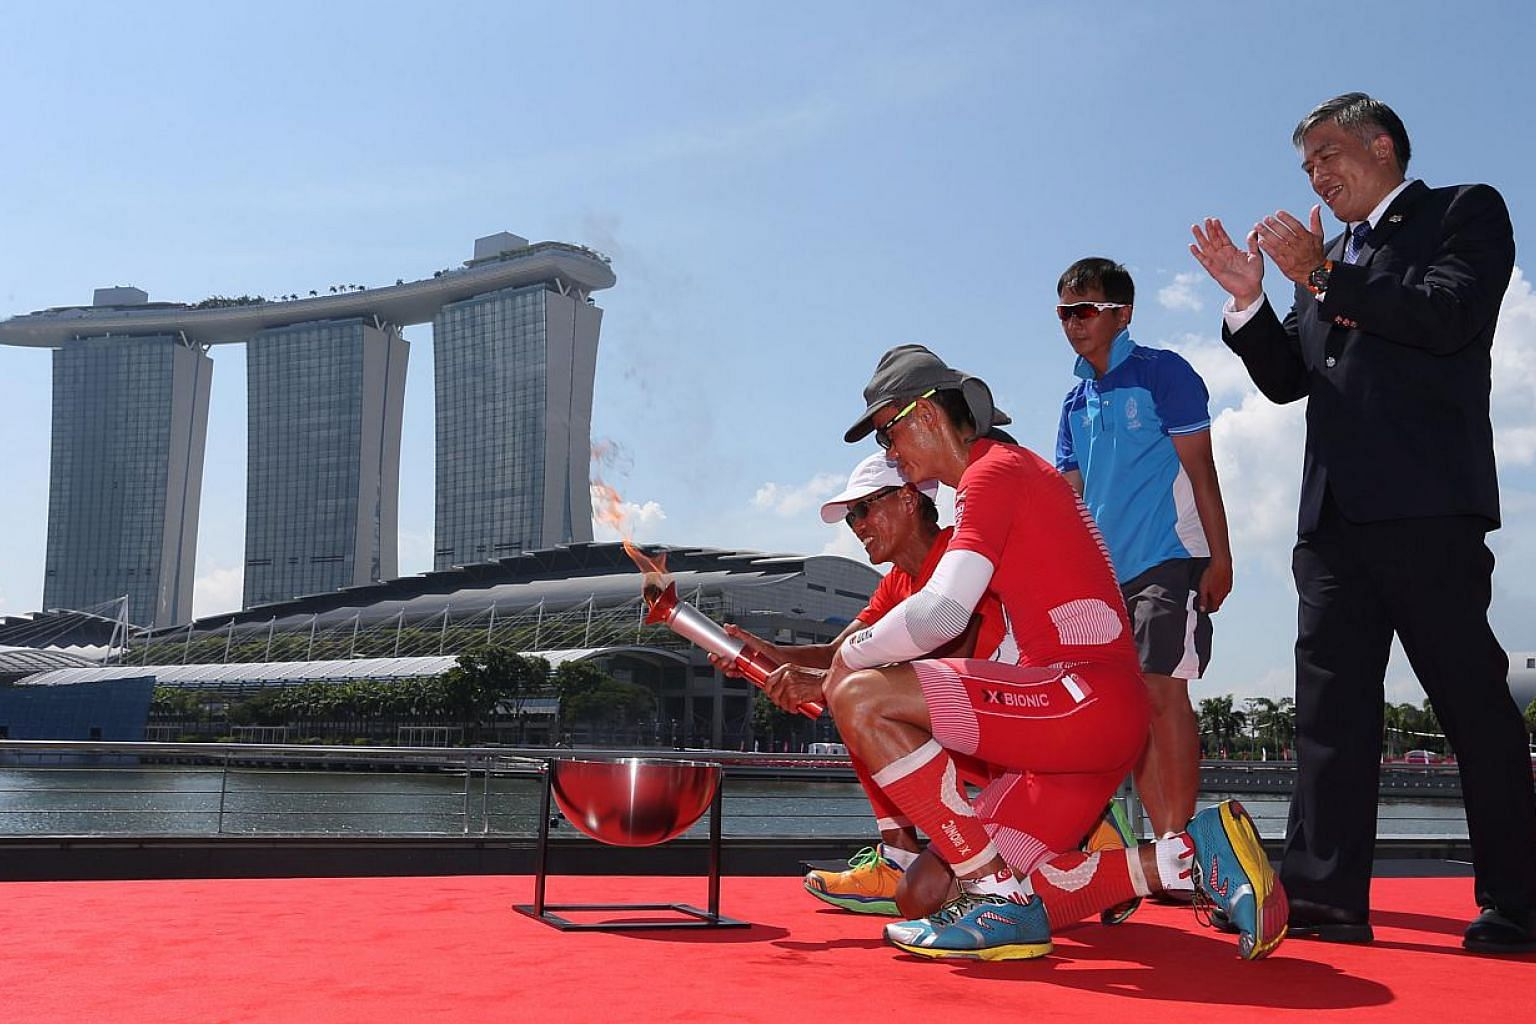 Ultramarathoners Lim Nghee Huat and Yong Yuen Cheng lighting up the official SEA Games torch at The Promontory@Marina Bay. -- PHOTO: REUTERS